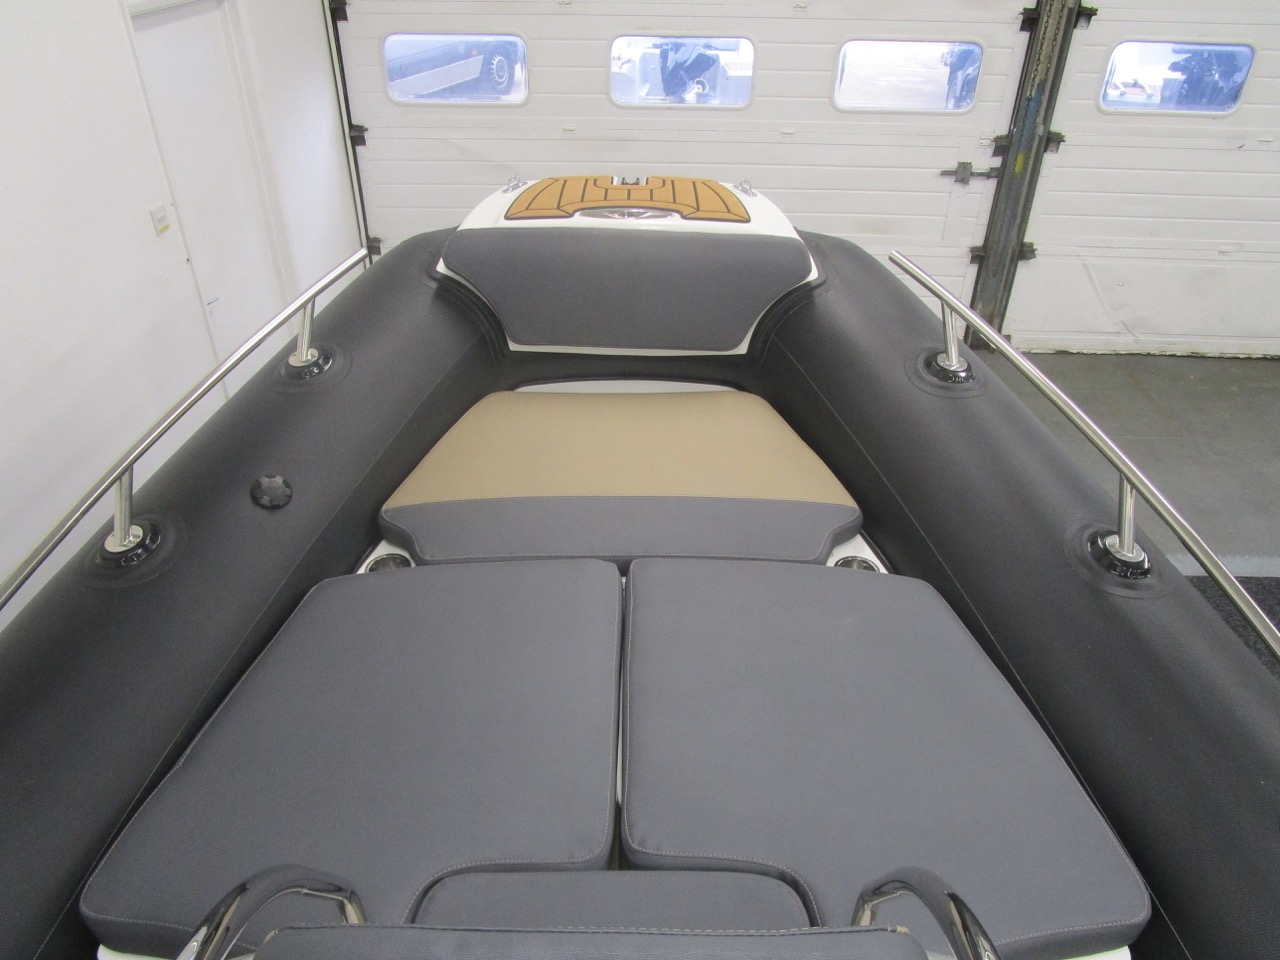 Grand RIB Golden Line G650 complete sundeck with cushions fitted